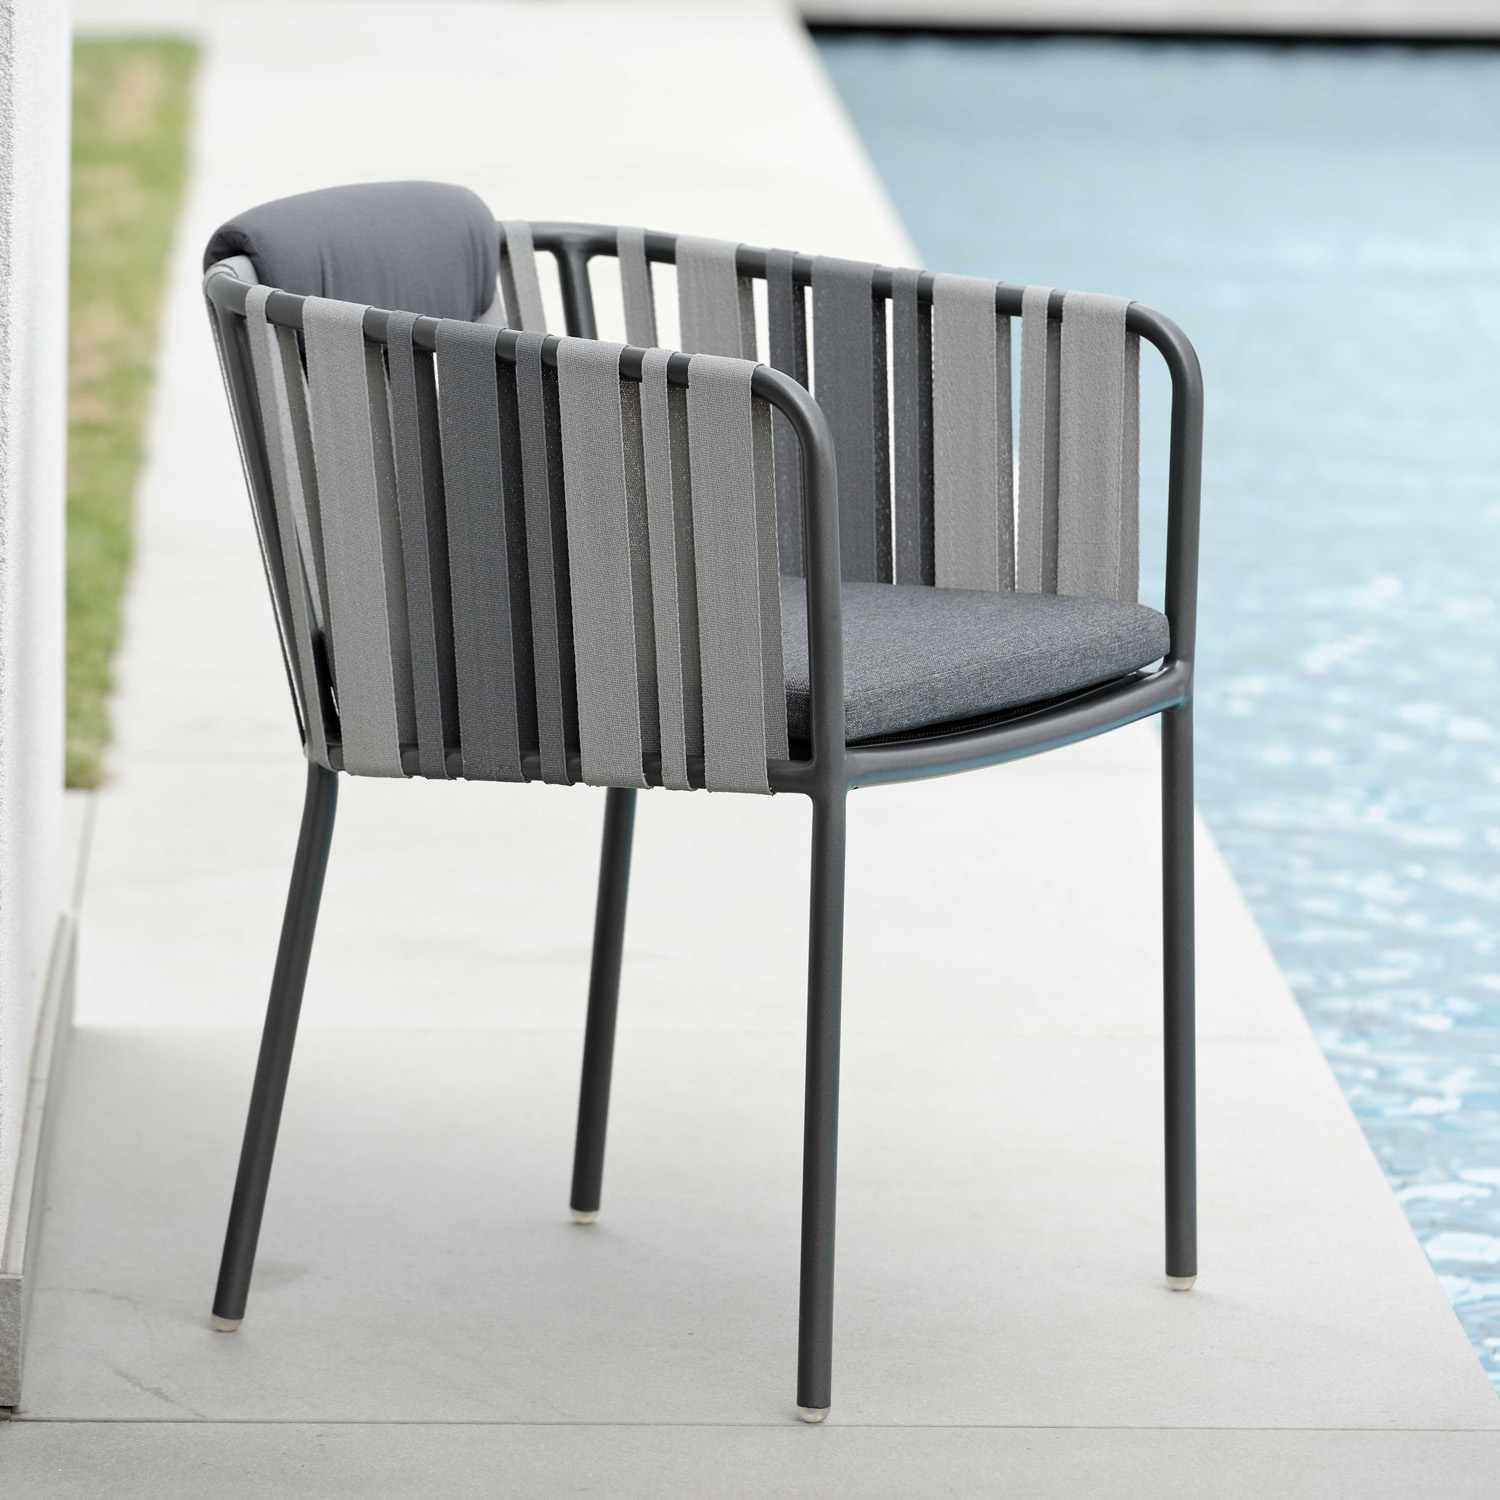 Space Outdoor Armchair - Aluminum Anthracite Textilen Grey 2 - Color With Cushion In Silk Grey by Outdoor Living